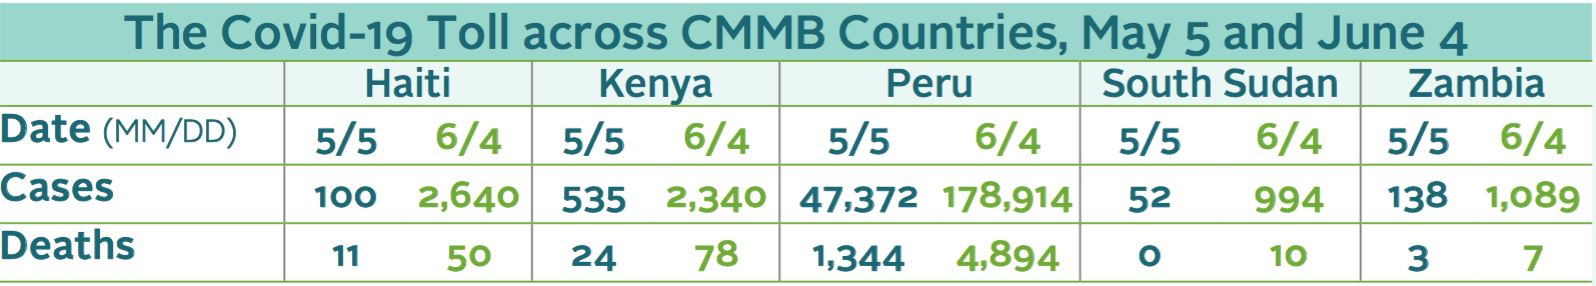 Chart showing Covid-19 toll in countries CMMB serves